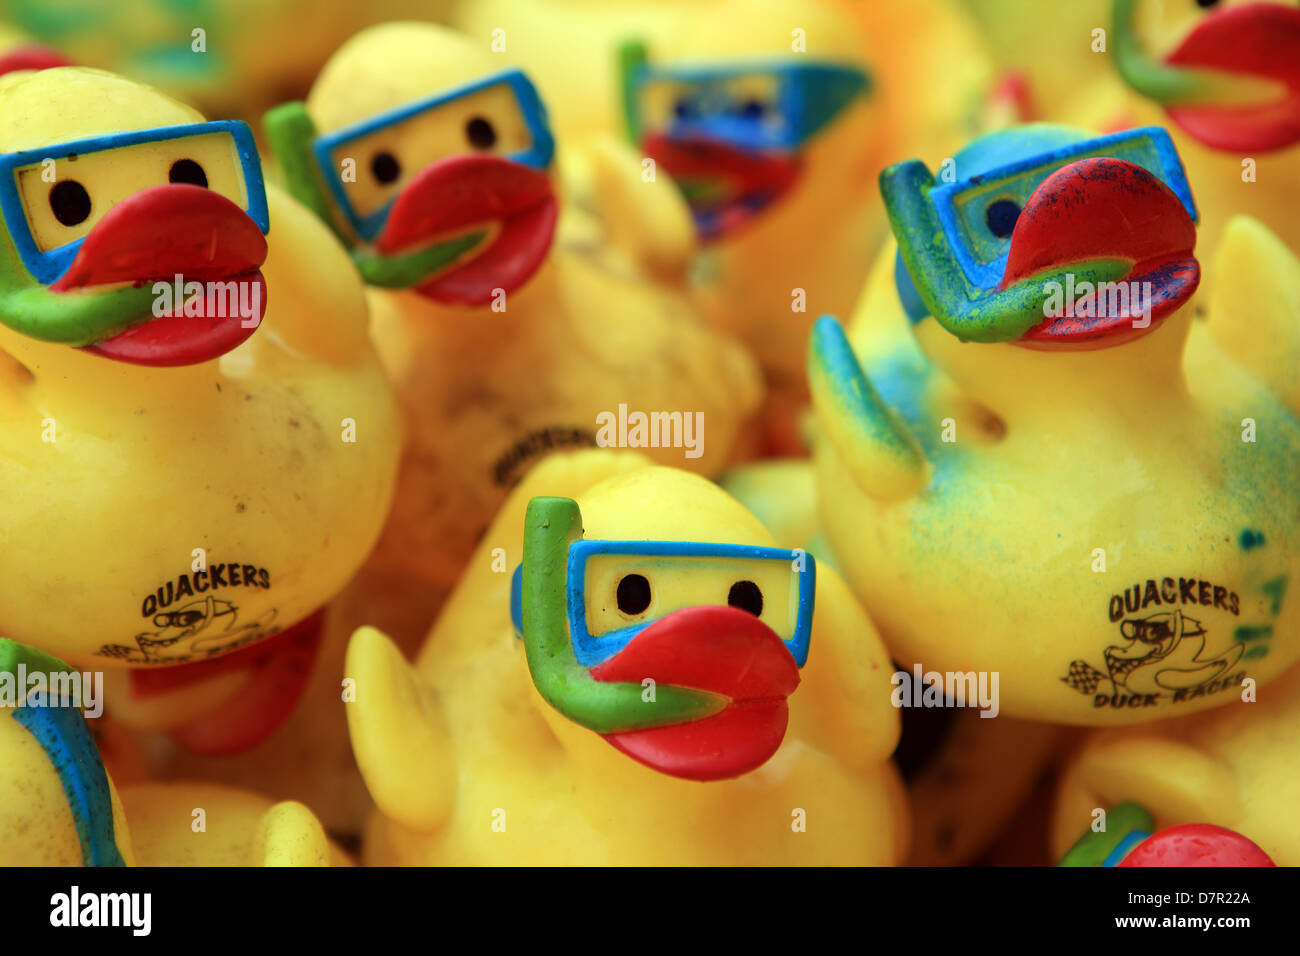 Yellow plastic ducks with snorkels and masks on ready for a charity duck race - Stock Image